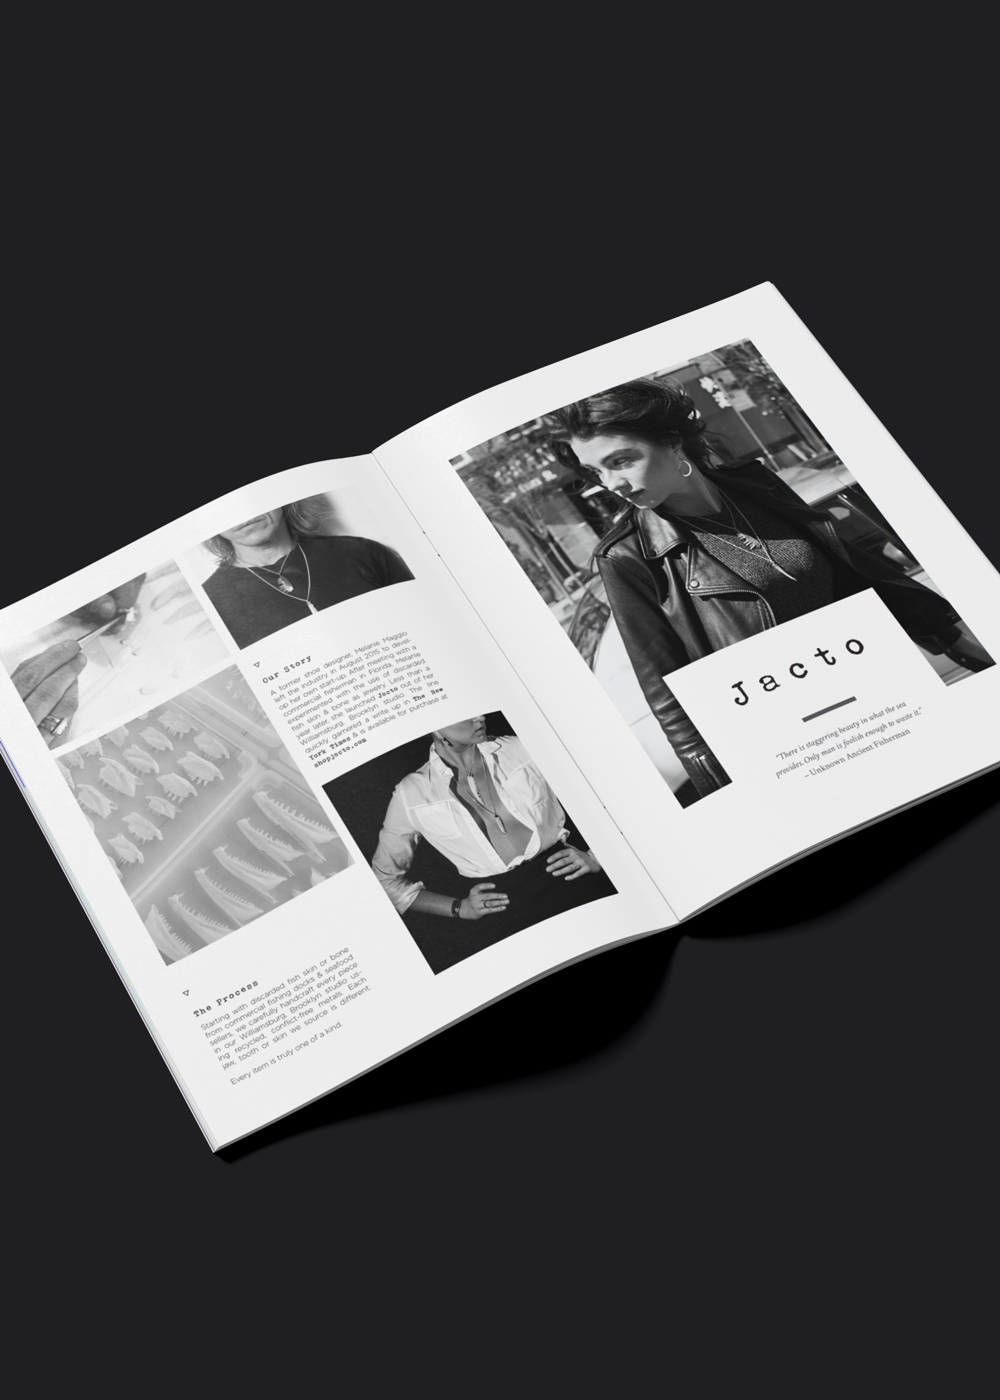 Informative pamphlet created for Jacto, a sustainable jewelry label based in Brooklyn, NY.